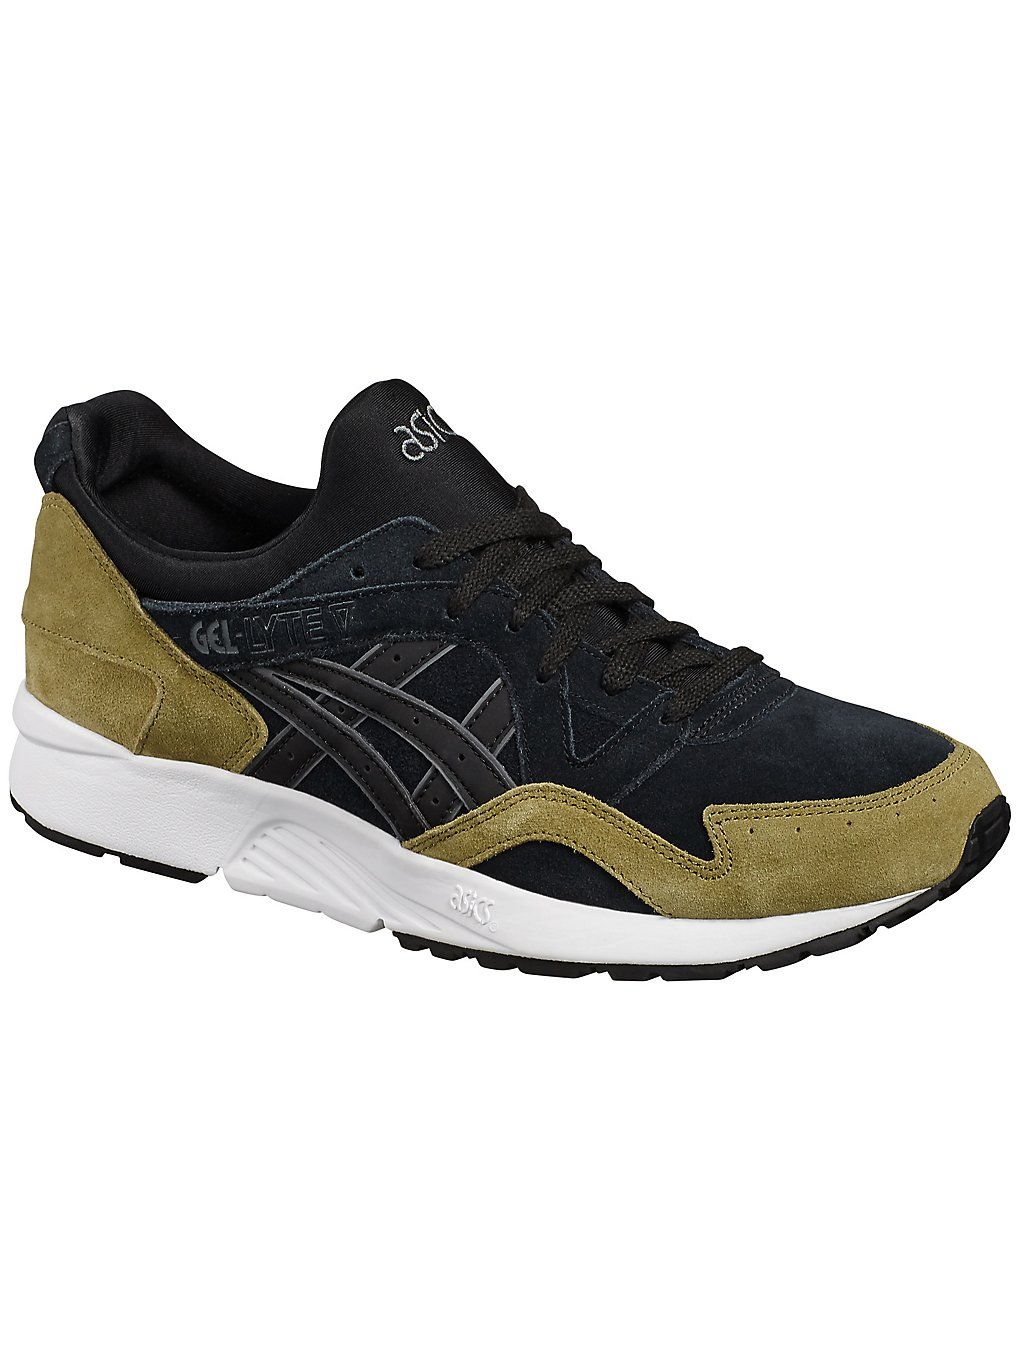 Image of Asics Gel-Lyte V Sneakers